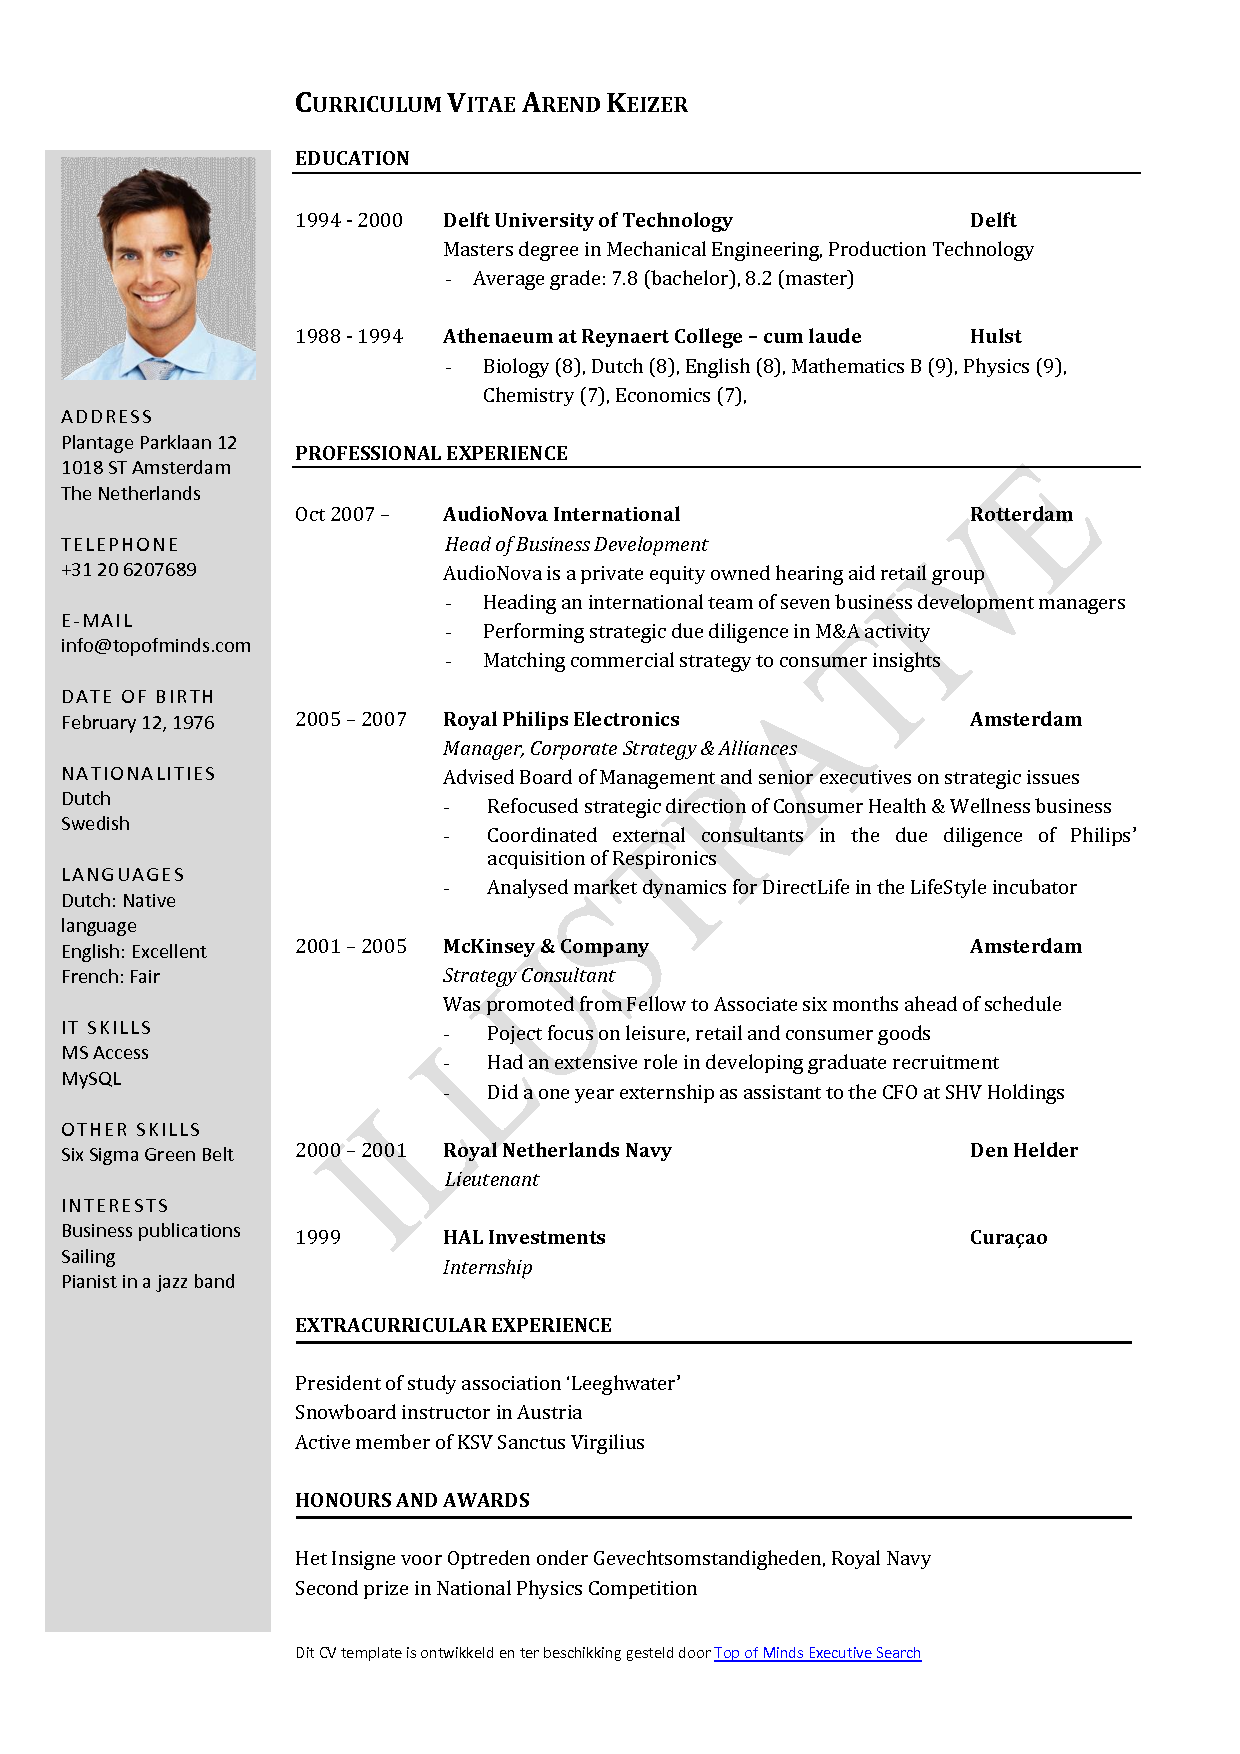 Download Resume Templates Word | Free Curriculum Vitae Template Word Download Cv Template When